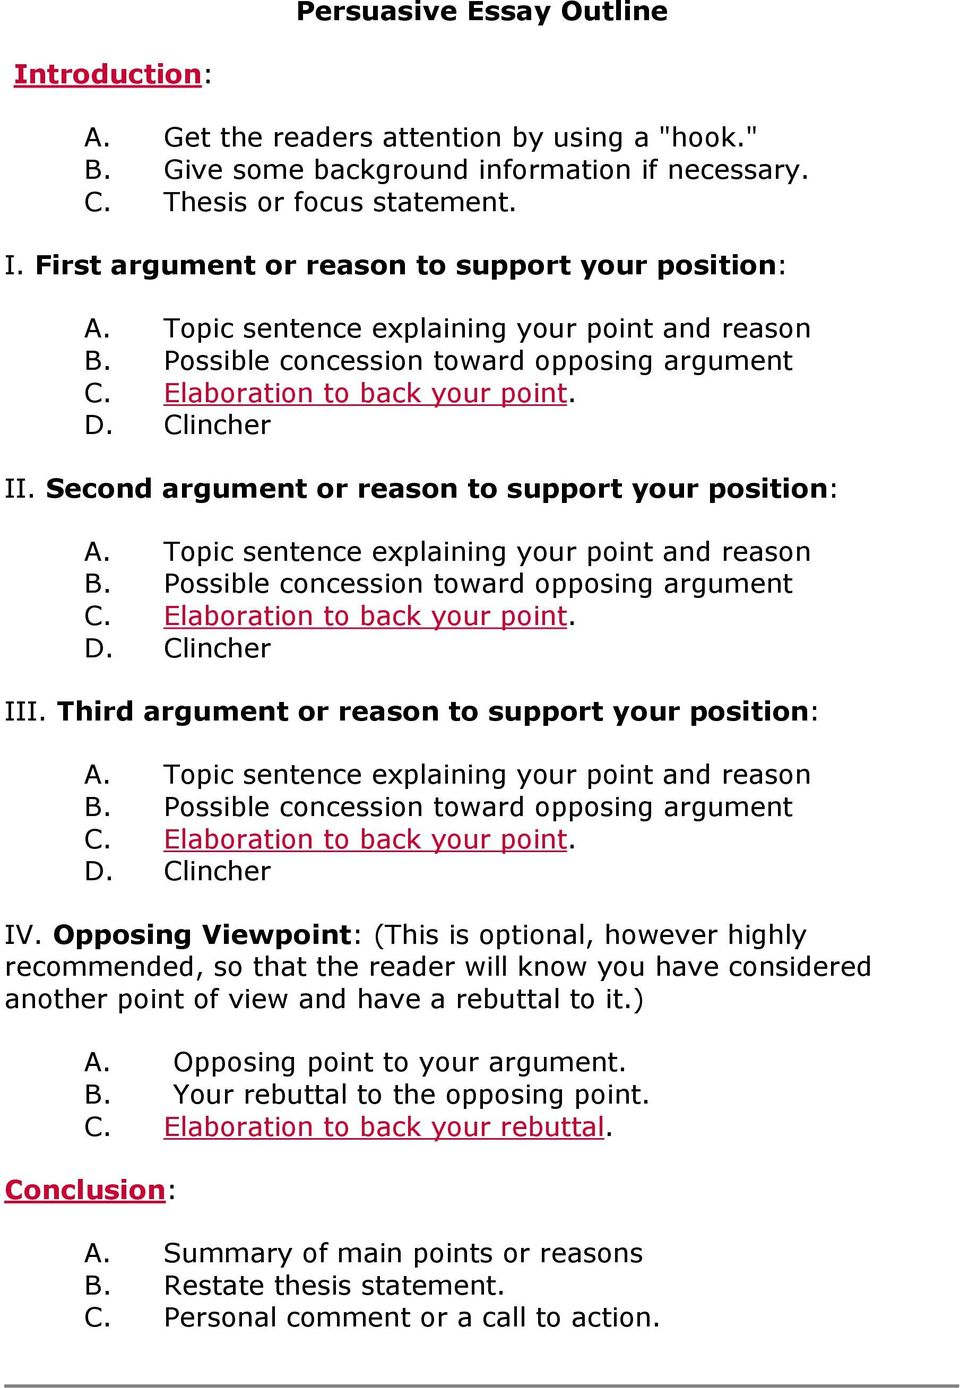 Second argument or reason to support your position: A. Topic sentence explaining your point and reason B. Possible concession toward opposing argument C. Elaboration to back your point. D.